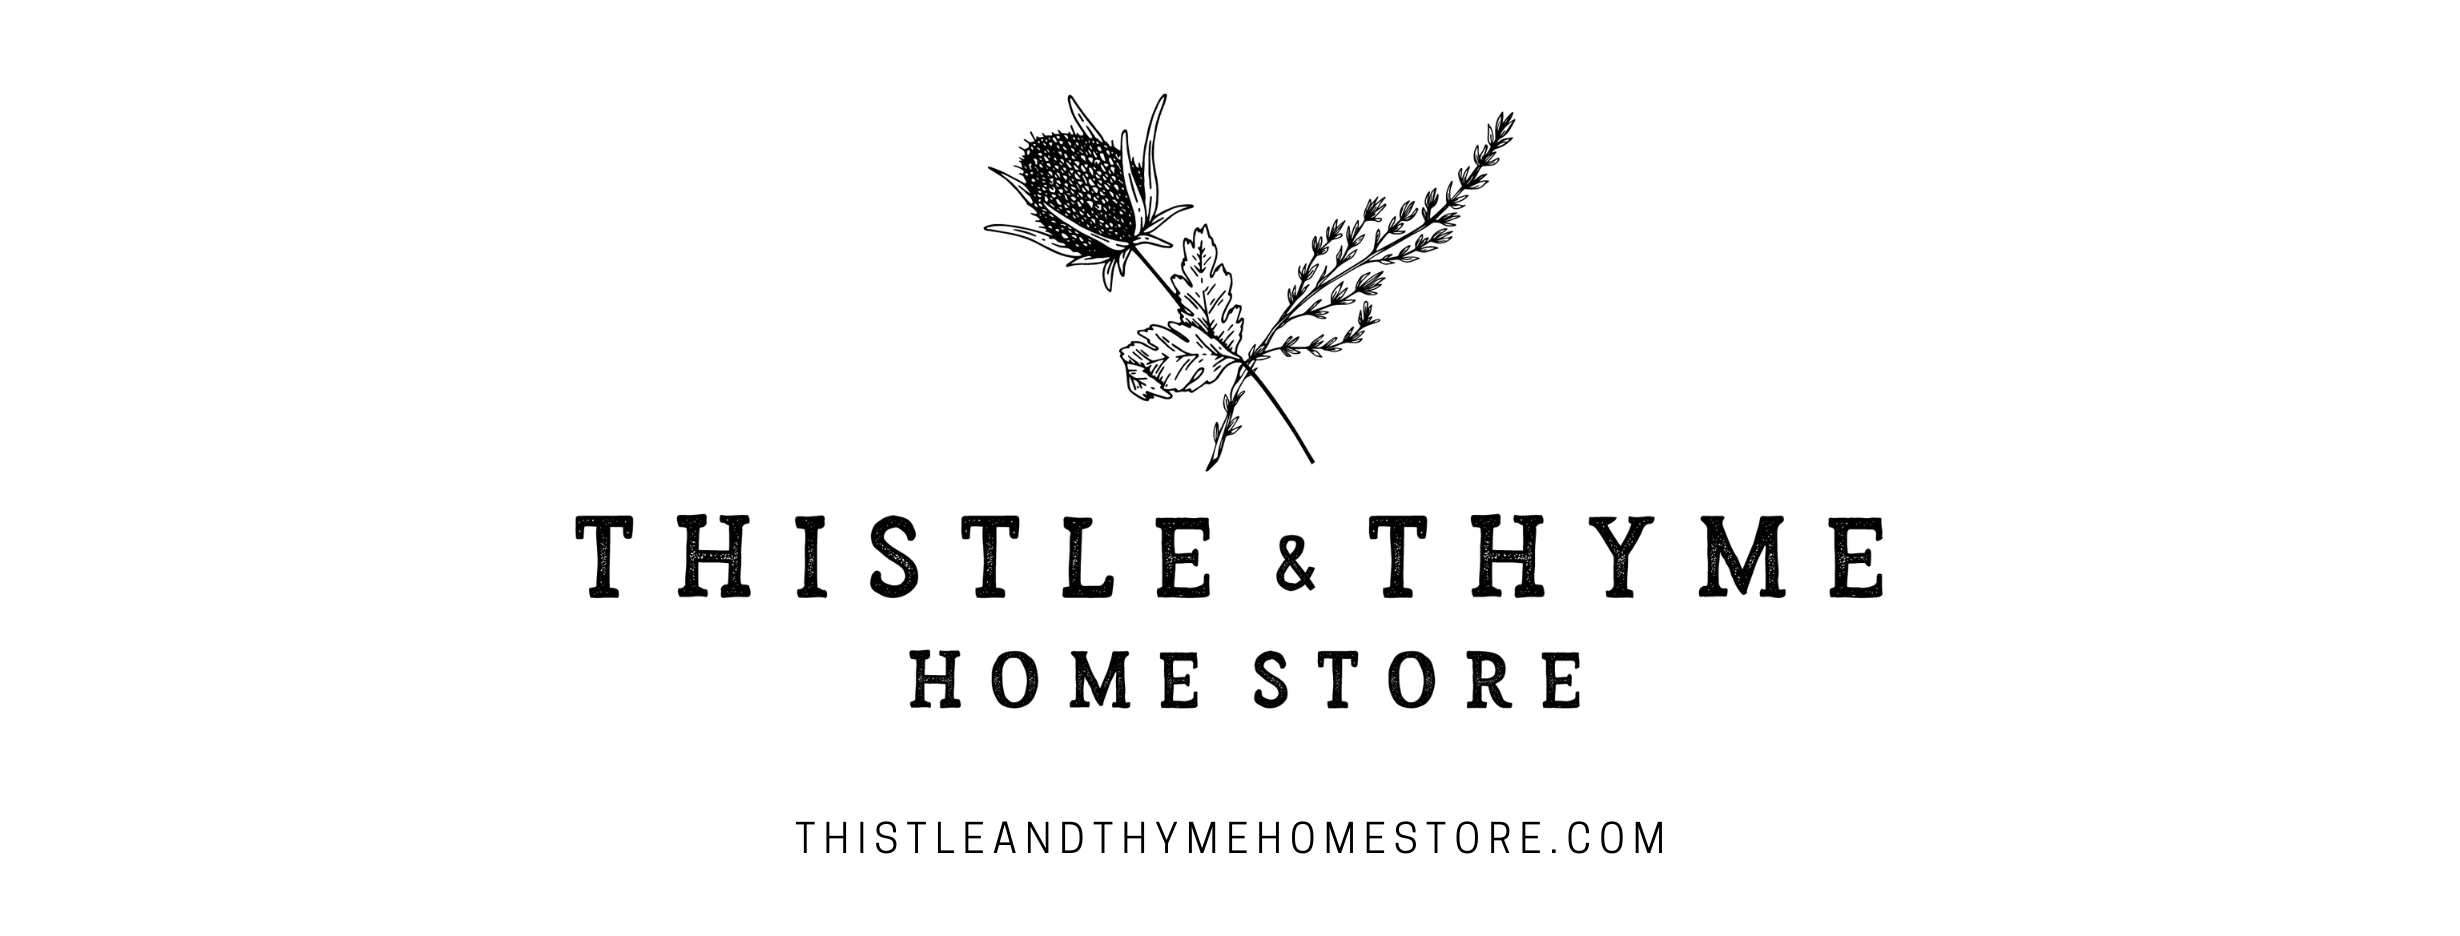 Thistle & Thyme Home Store